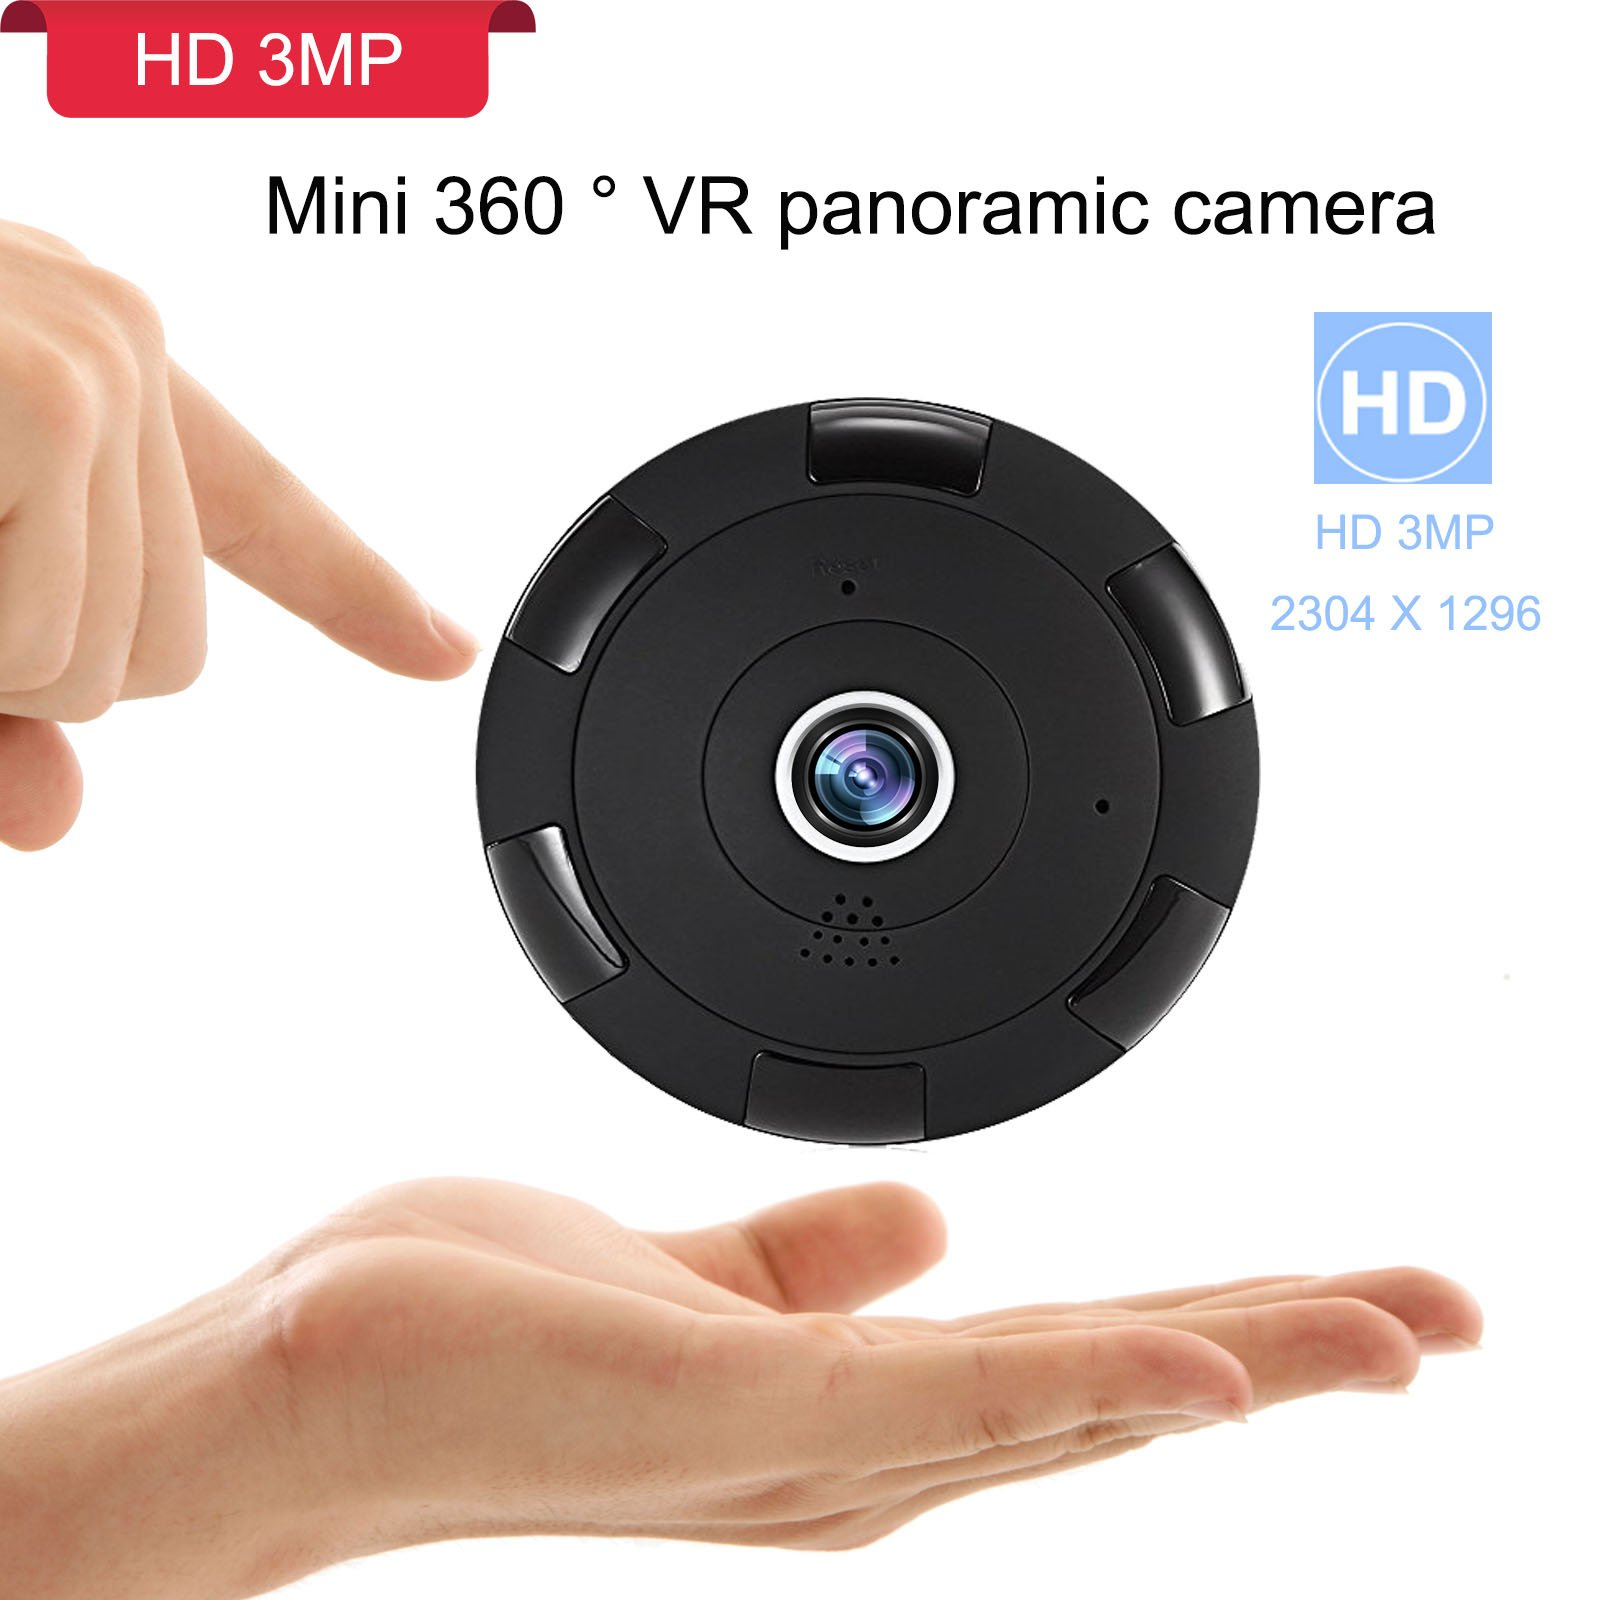 360 3MP WiFi Home Security Mini IP Camera, Baby/Elder/Pet/Nanny Monitor, HD 2304x1296P Wireless Indoor Security Surveillance CCTV Camera System with APP for IOS, Android, Night Vision,Two-way Audio